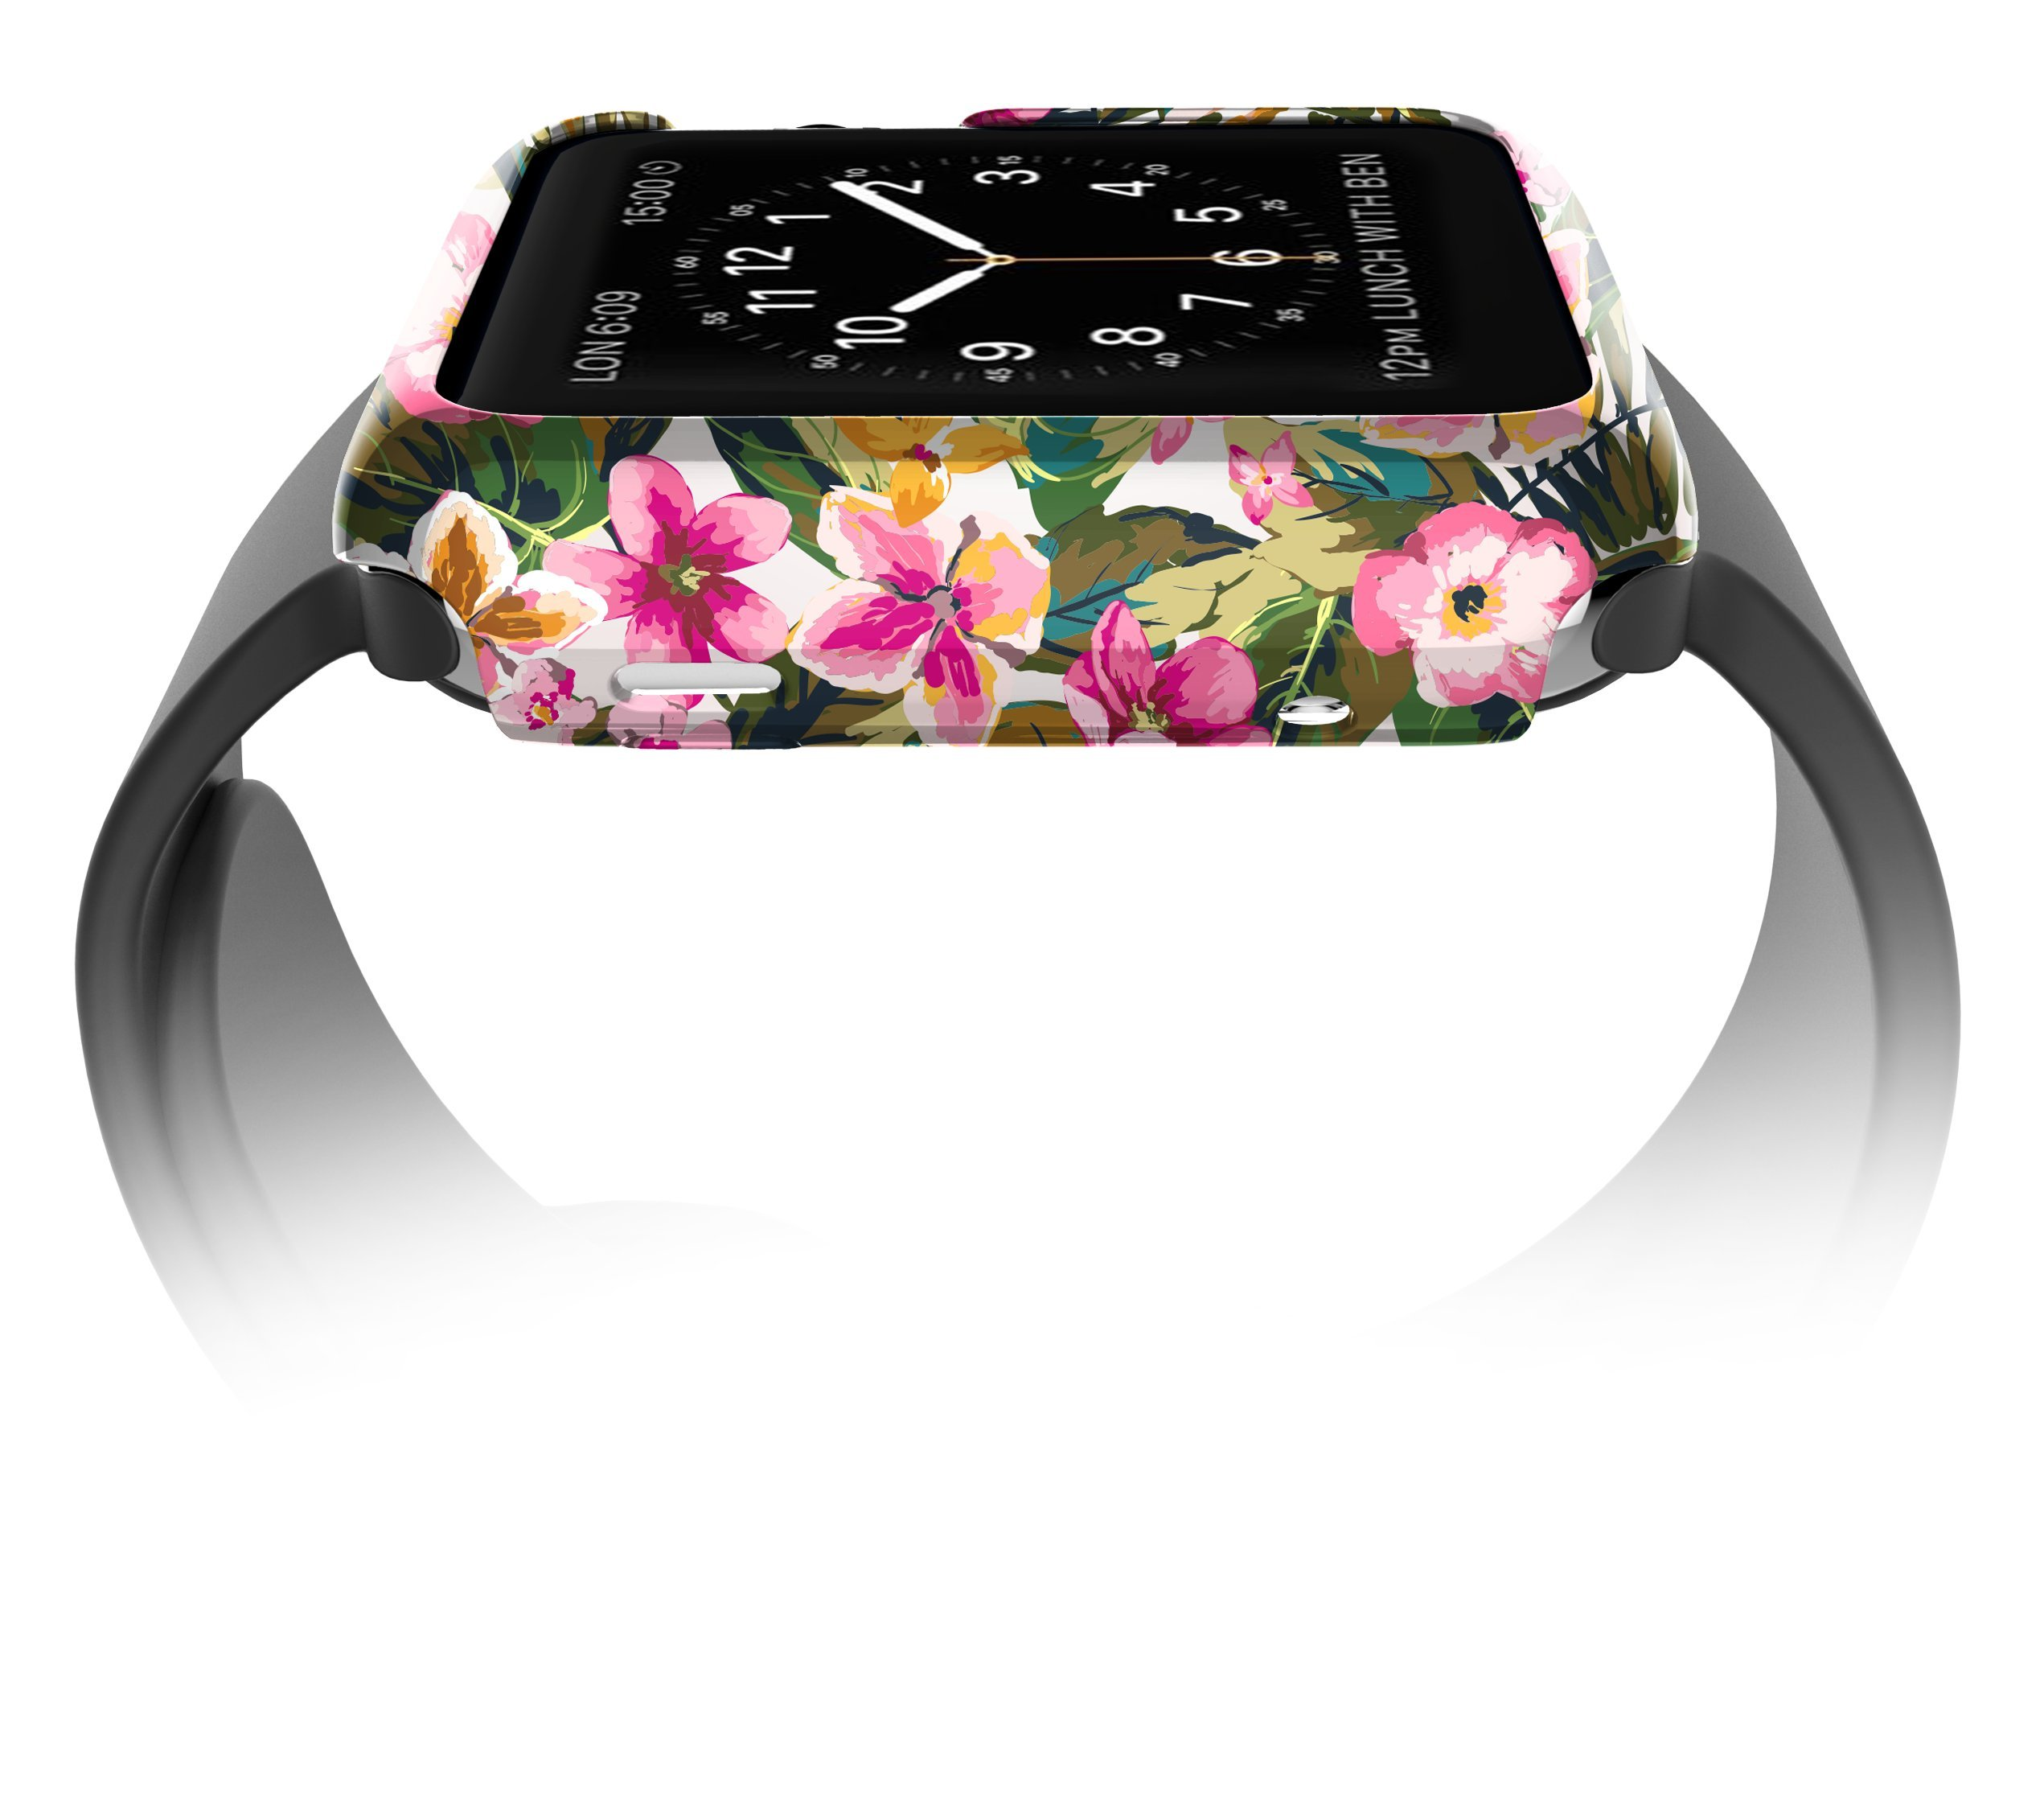 X-Doria 38mm Apple Watch Case (Revel Bumper) Fashion Case (Floral Palm) - Compatible with Apple Watch Series 1, Series 2, Series 3 and Nike+ by X-Doria (Image #3)